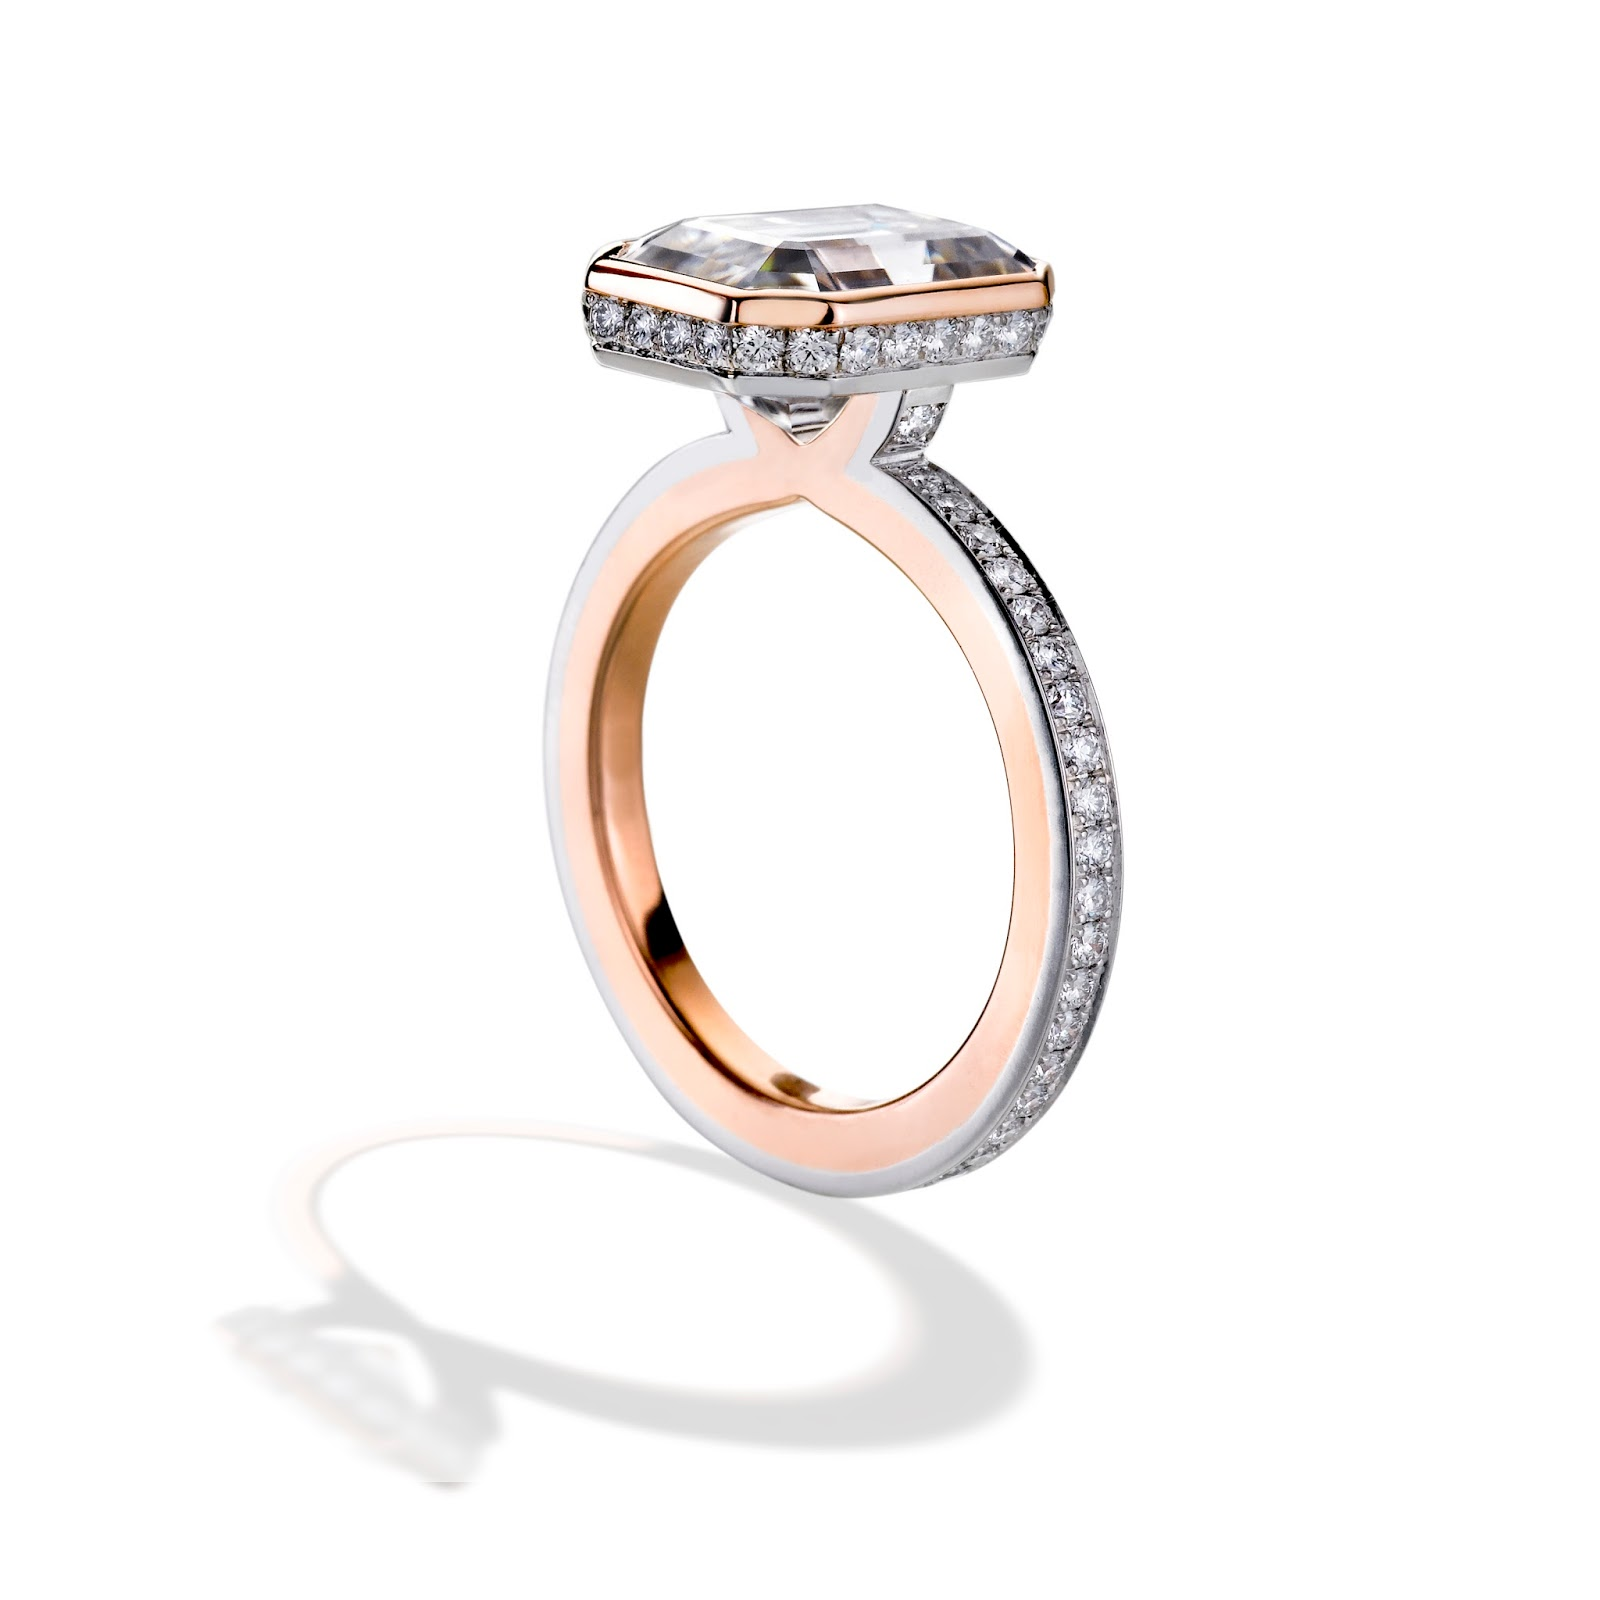 cut markpatterson diamond finished mark gold product engagement new cushion rings ring rose patterson arrivals